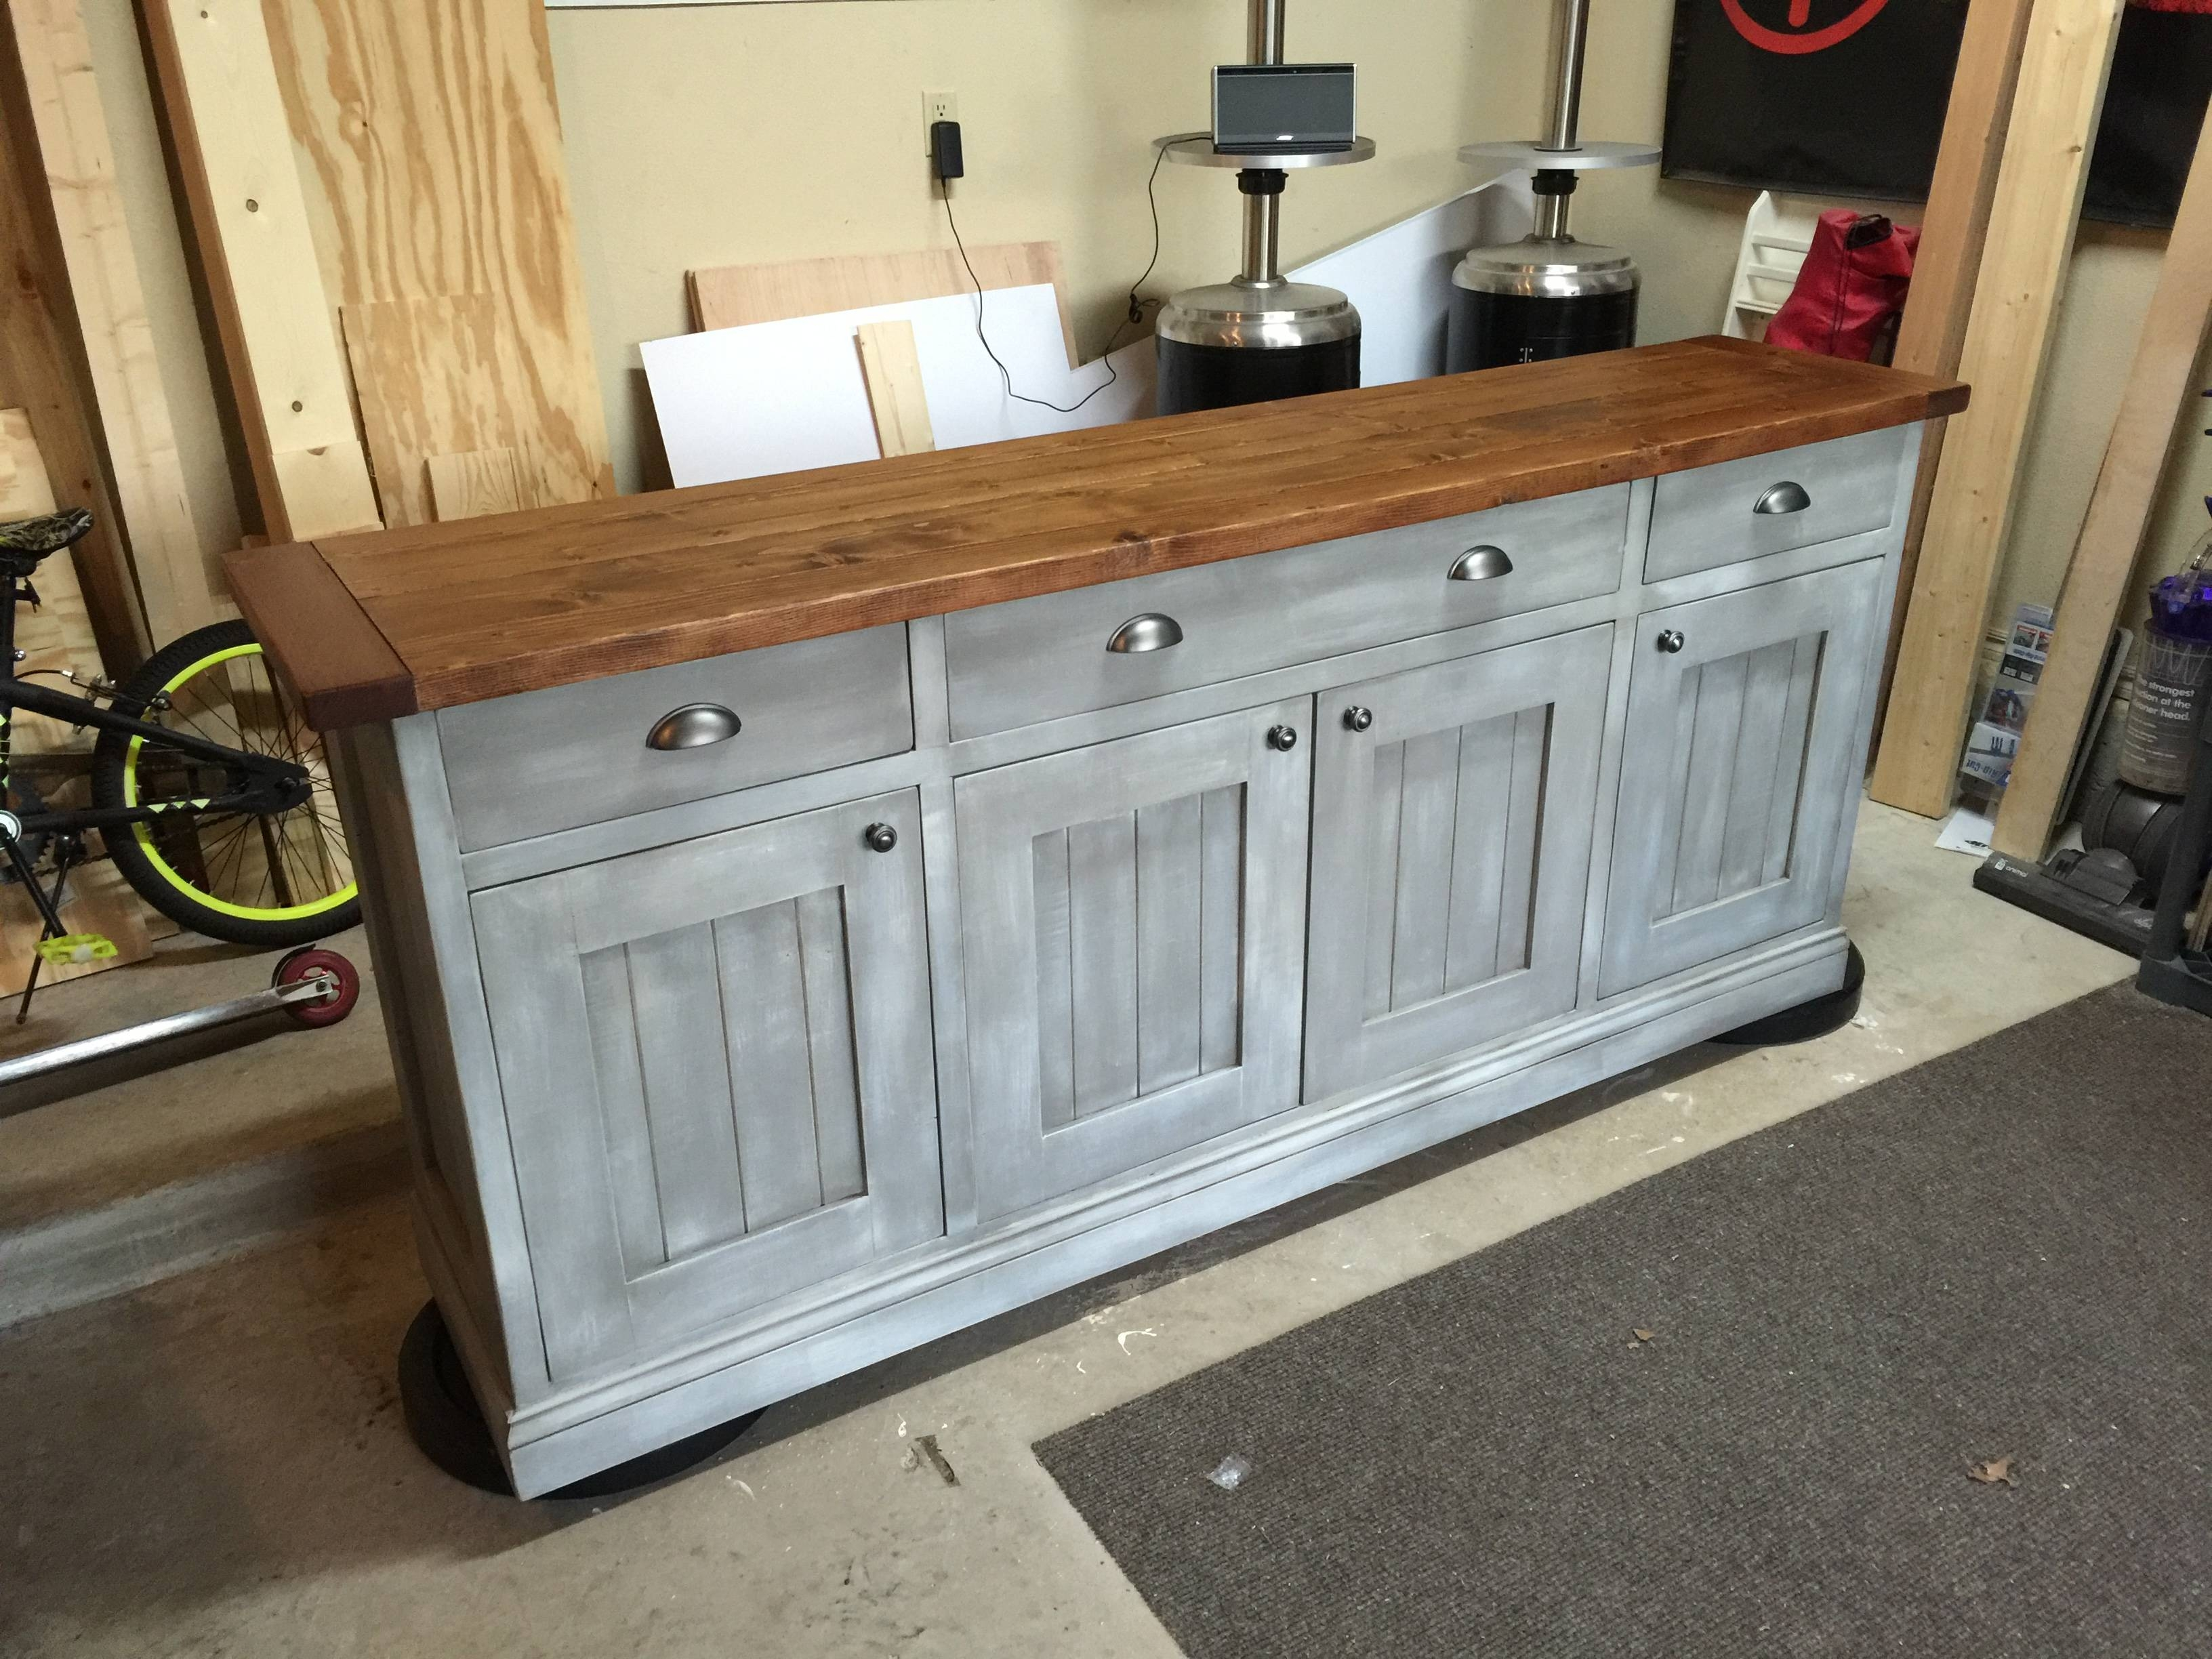 Ana White | Planked Wood Sideboard - Diy Projects pertaining to Distressed Wood Sideboards (Image 3 of 30)